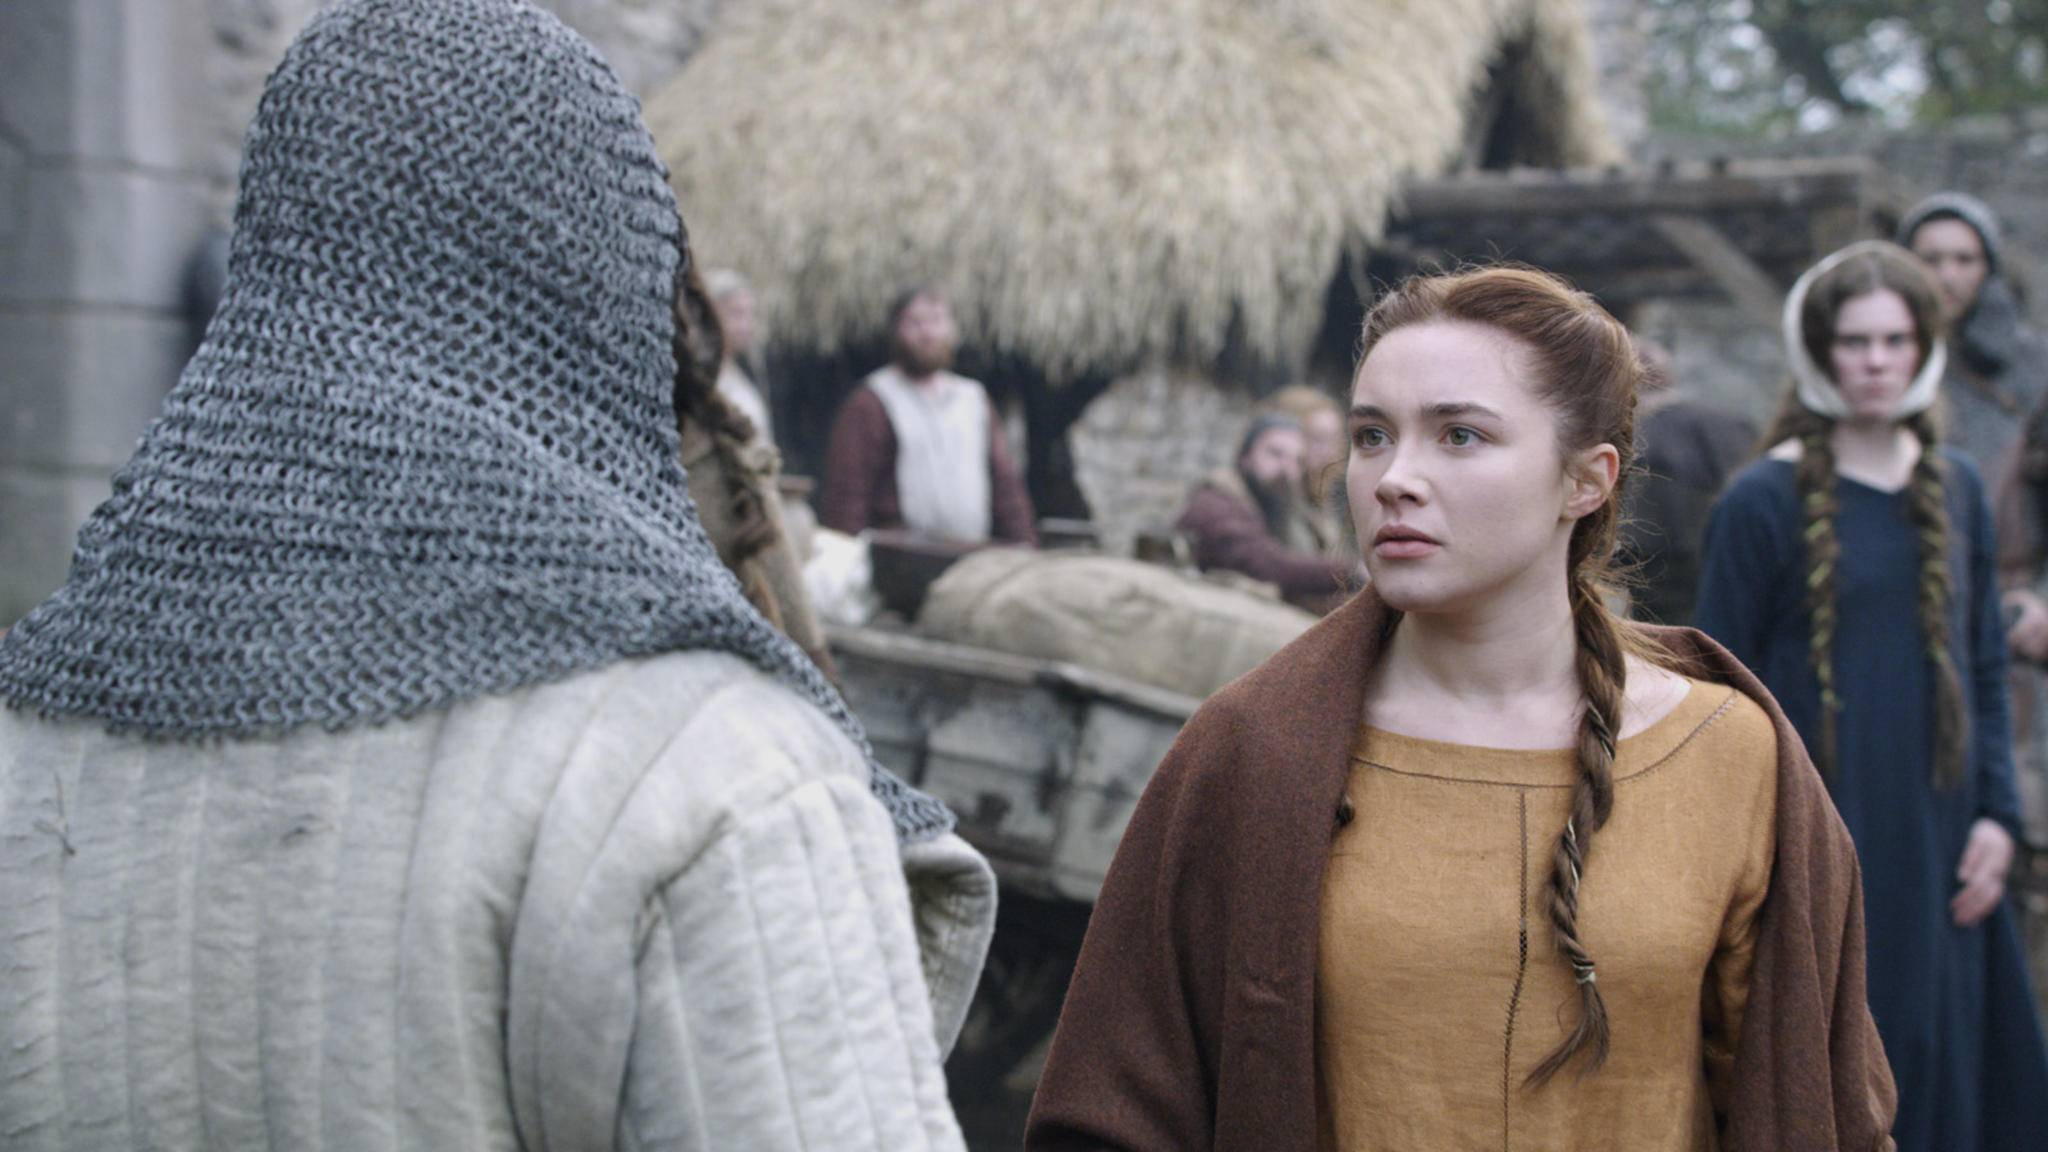 Florence pugh in outlaw king 2018 - 2 4